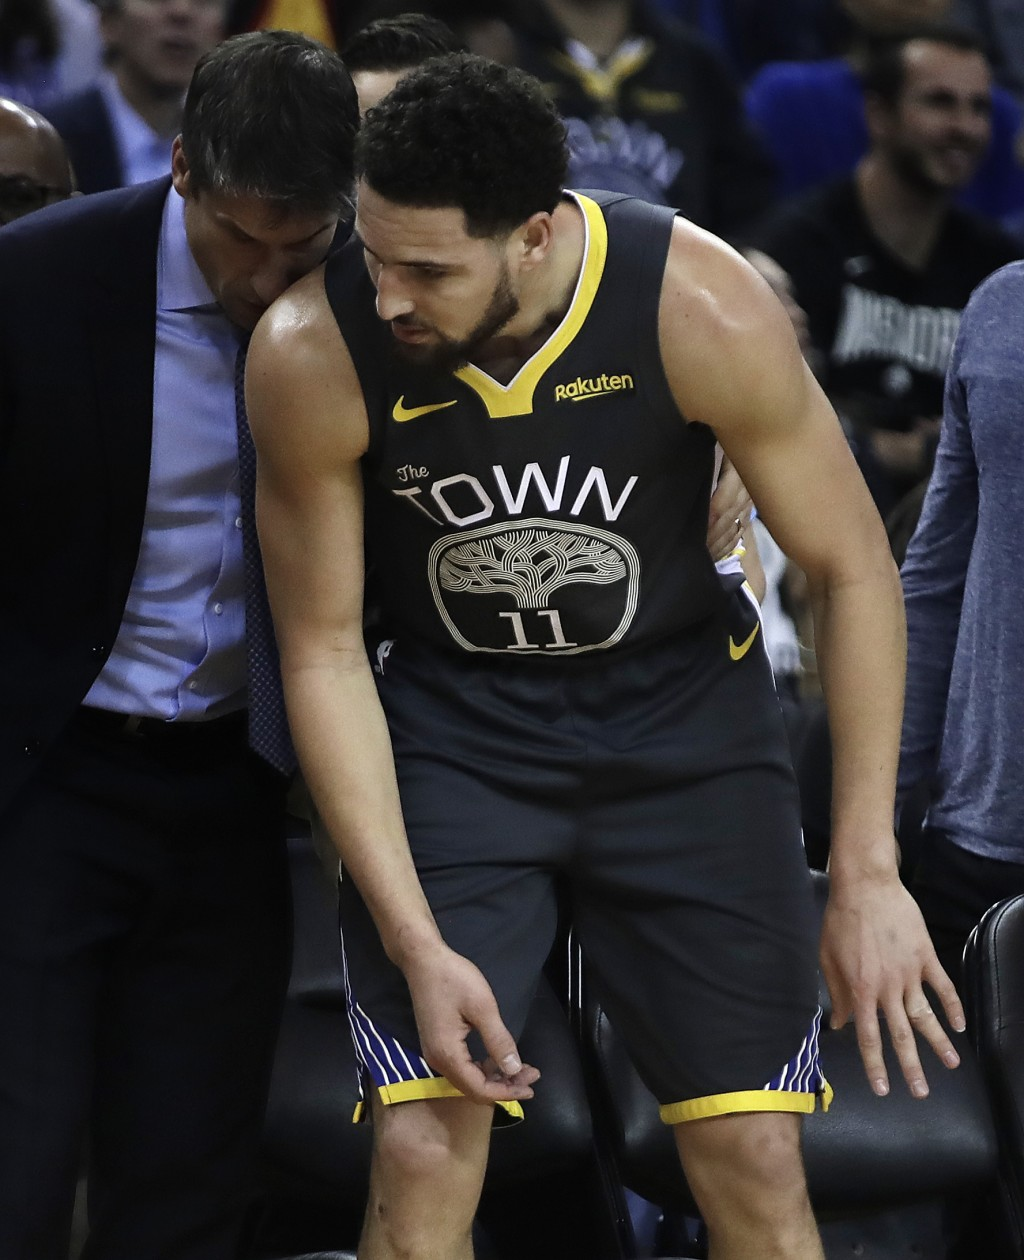 Golden State Warriors' Klay Thompson leaves in the first half of an NBA basketball game against the Utah Jazz with a sprained finger, Tuesday, Feb. 12